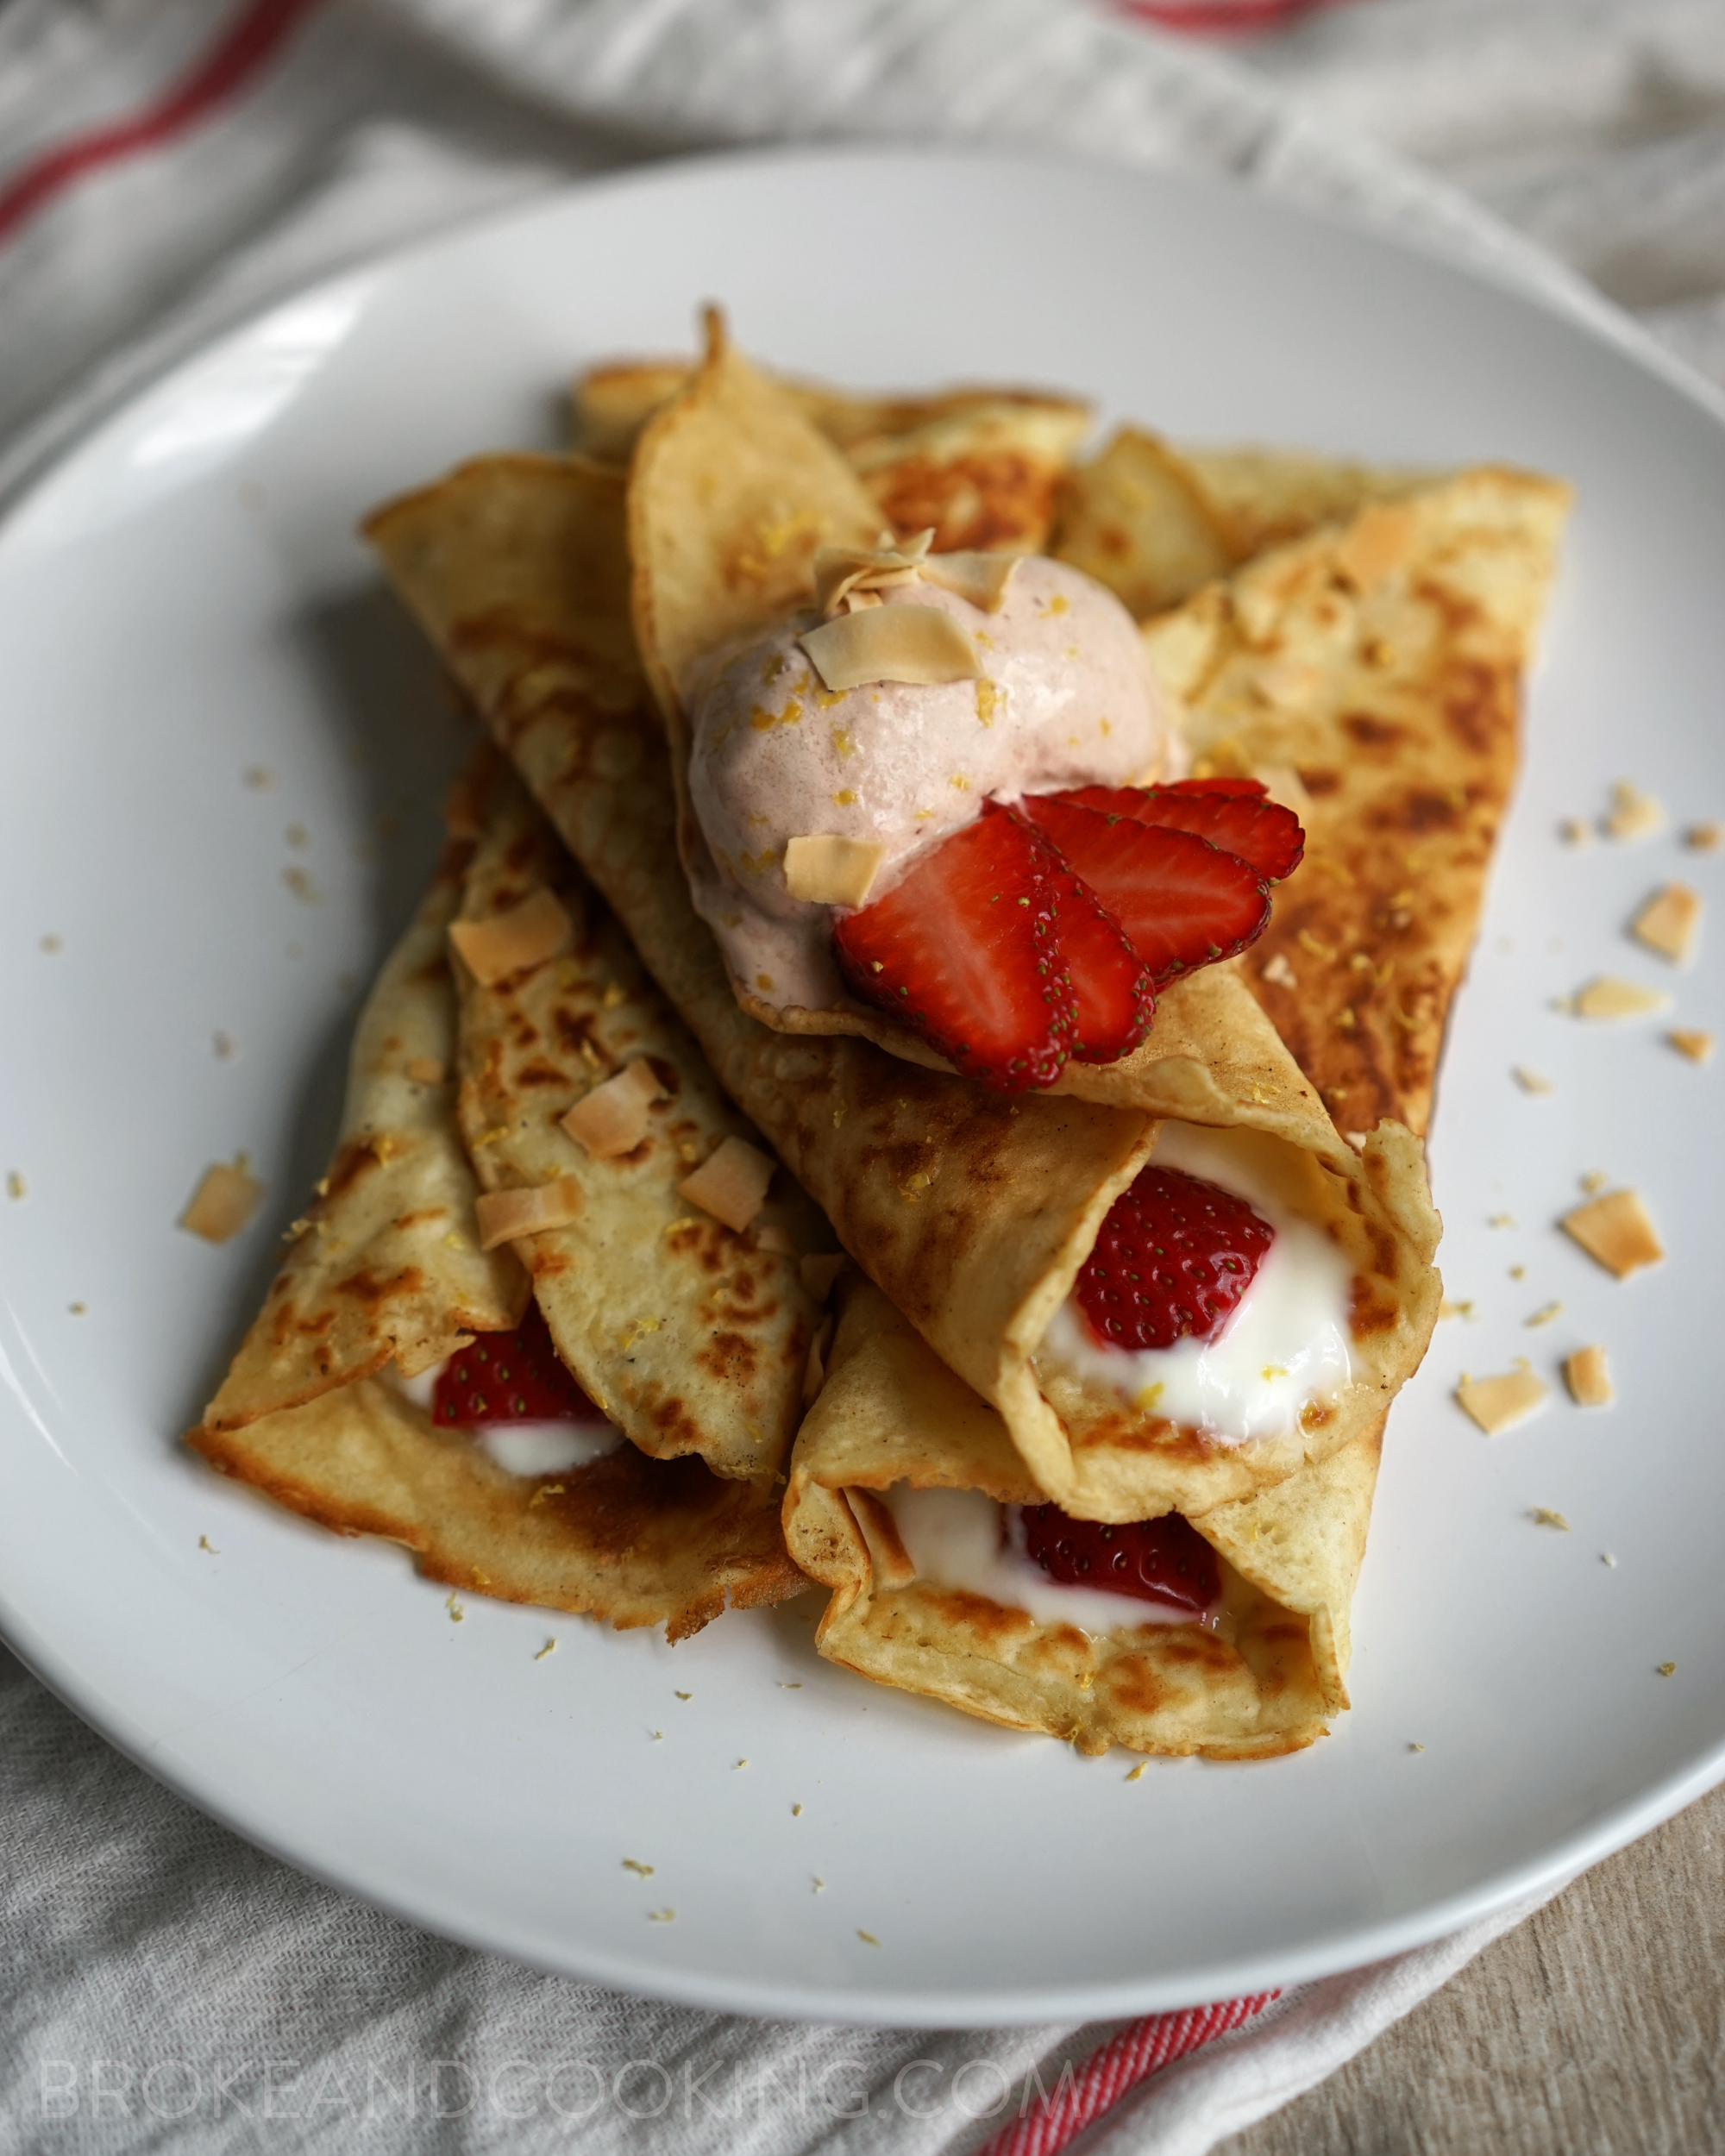 Light and Fluffy Crepes Recipe by Broke and Cooking - www.brokeandcooking.com